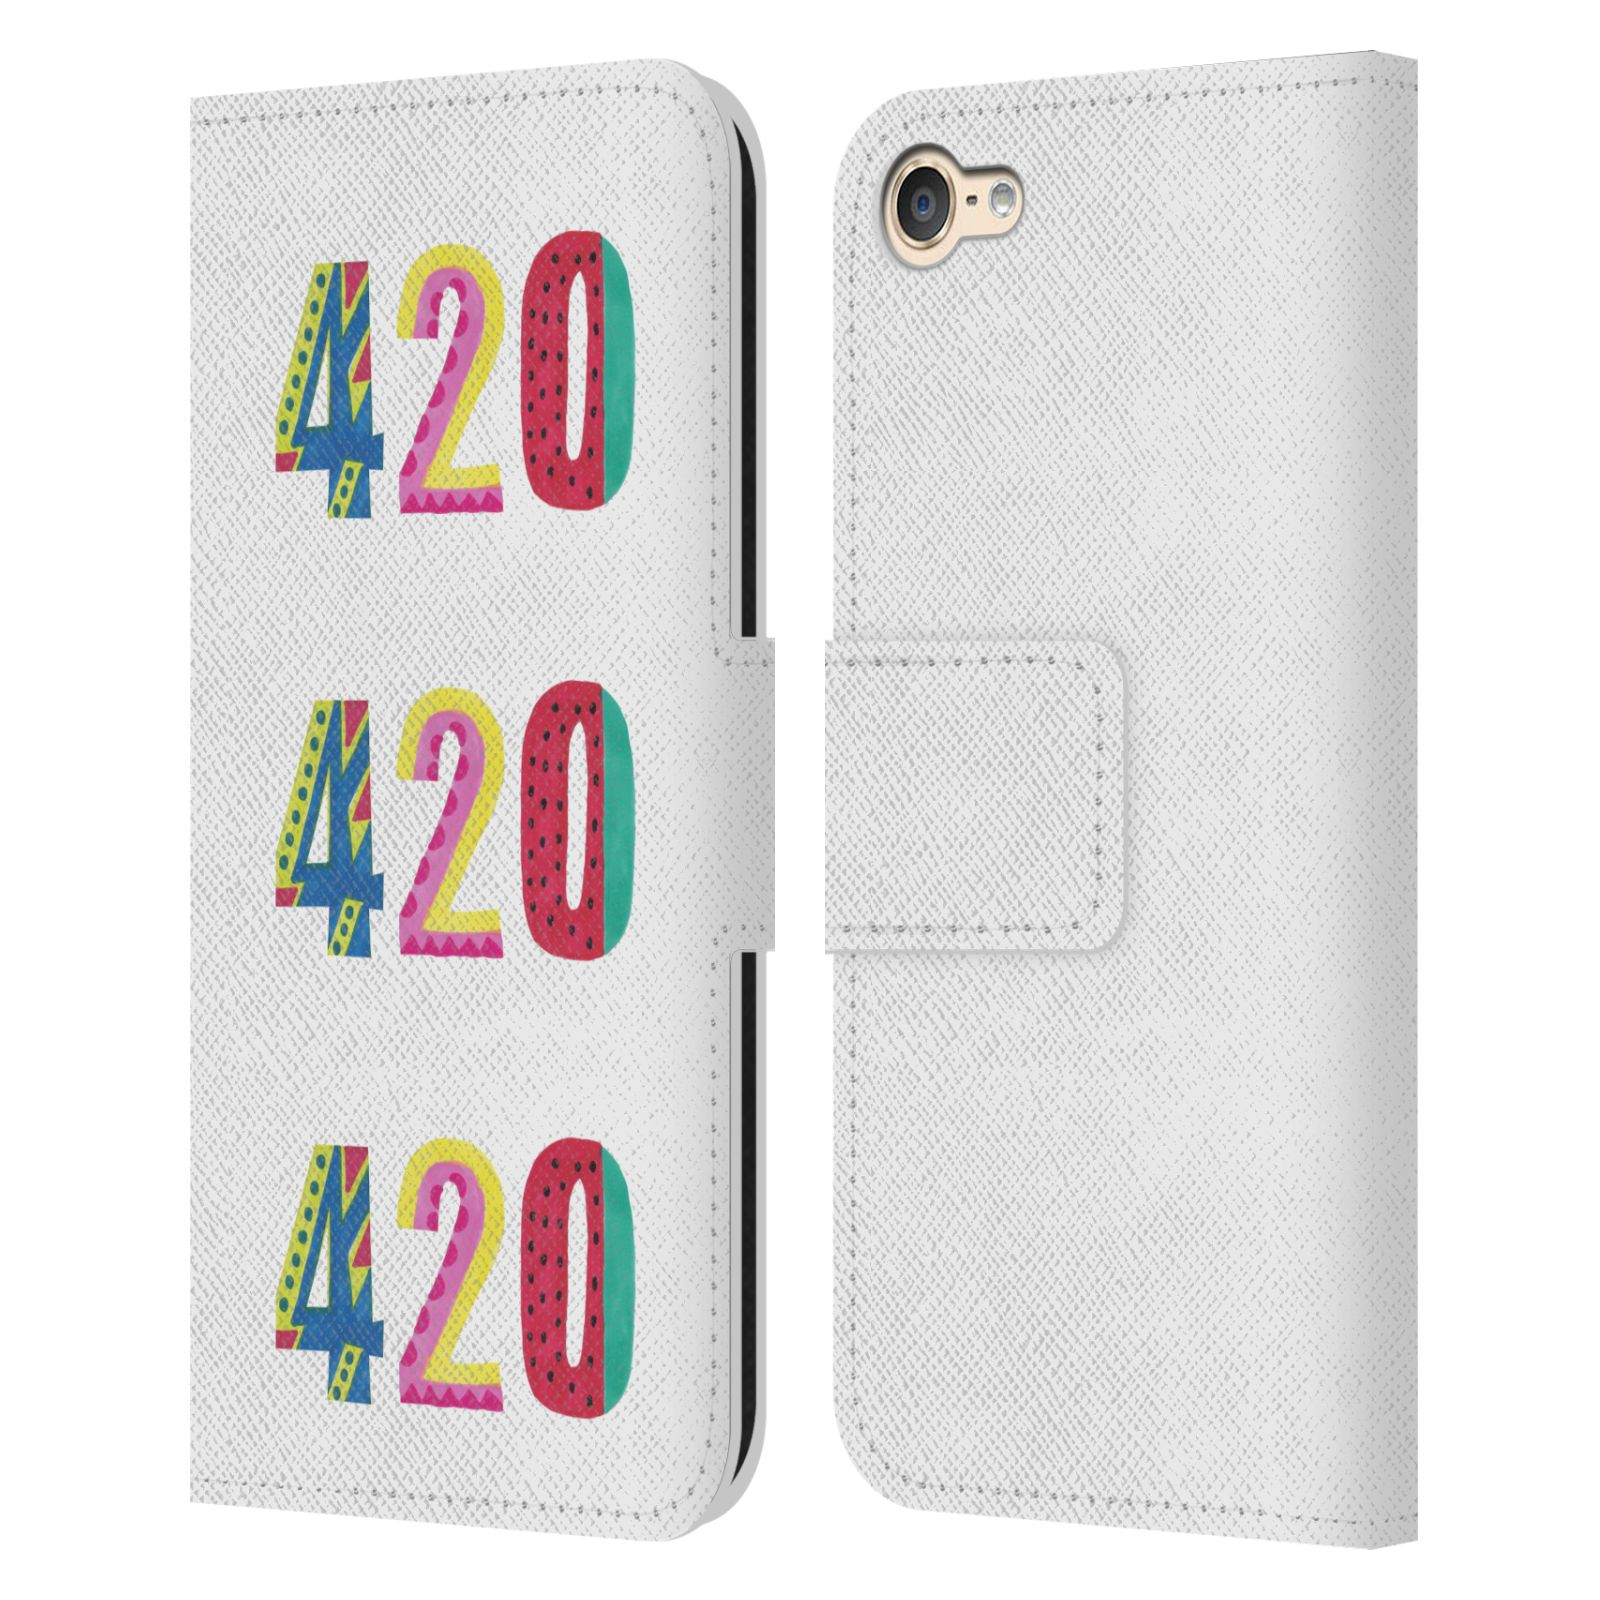 OFFICIAL-VASARE-NAR-TYPOGRAPHY-2-LEATHER-BOOK-CASE-FOR-APPLE-iPOD-TOUCH-MP3